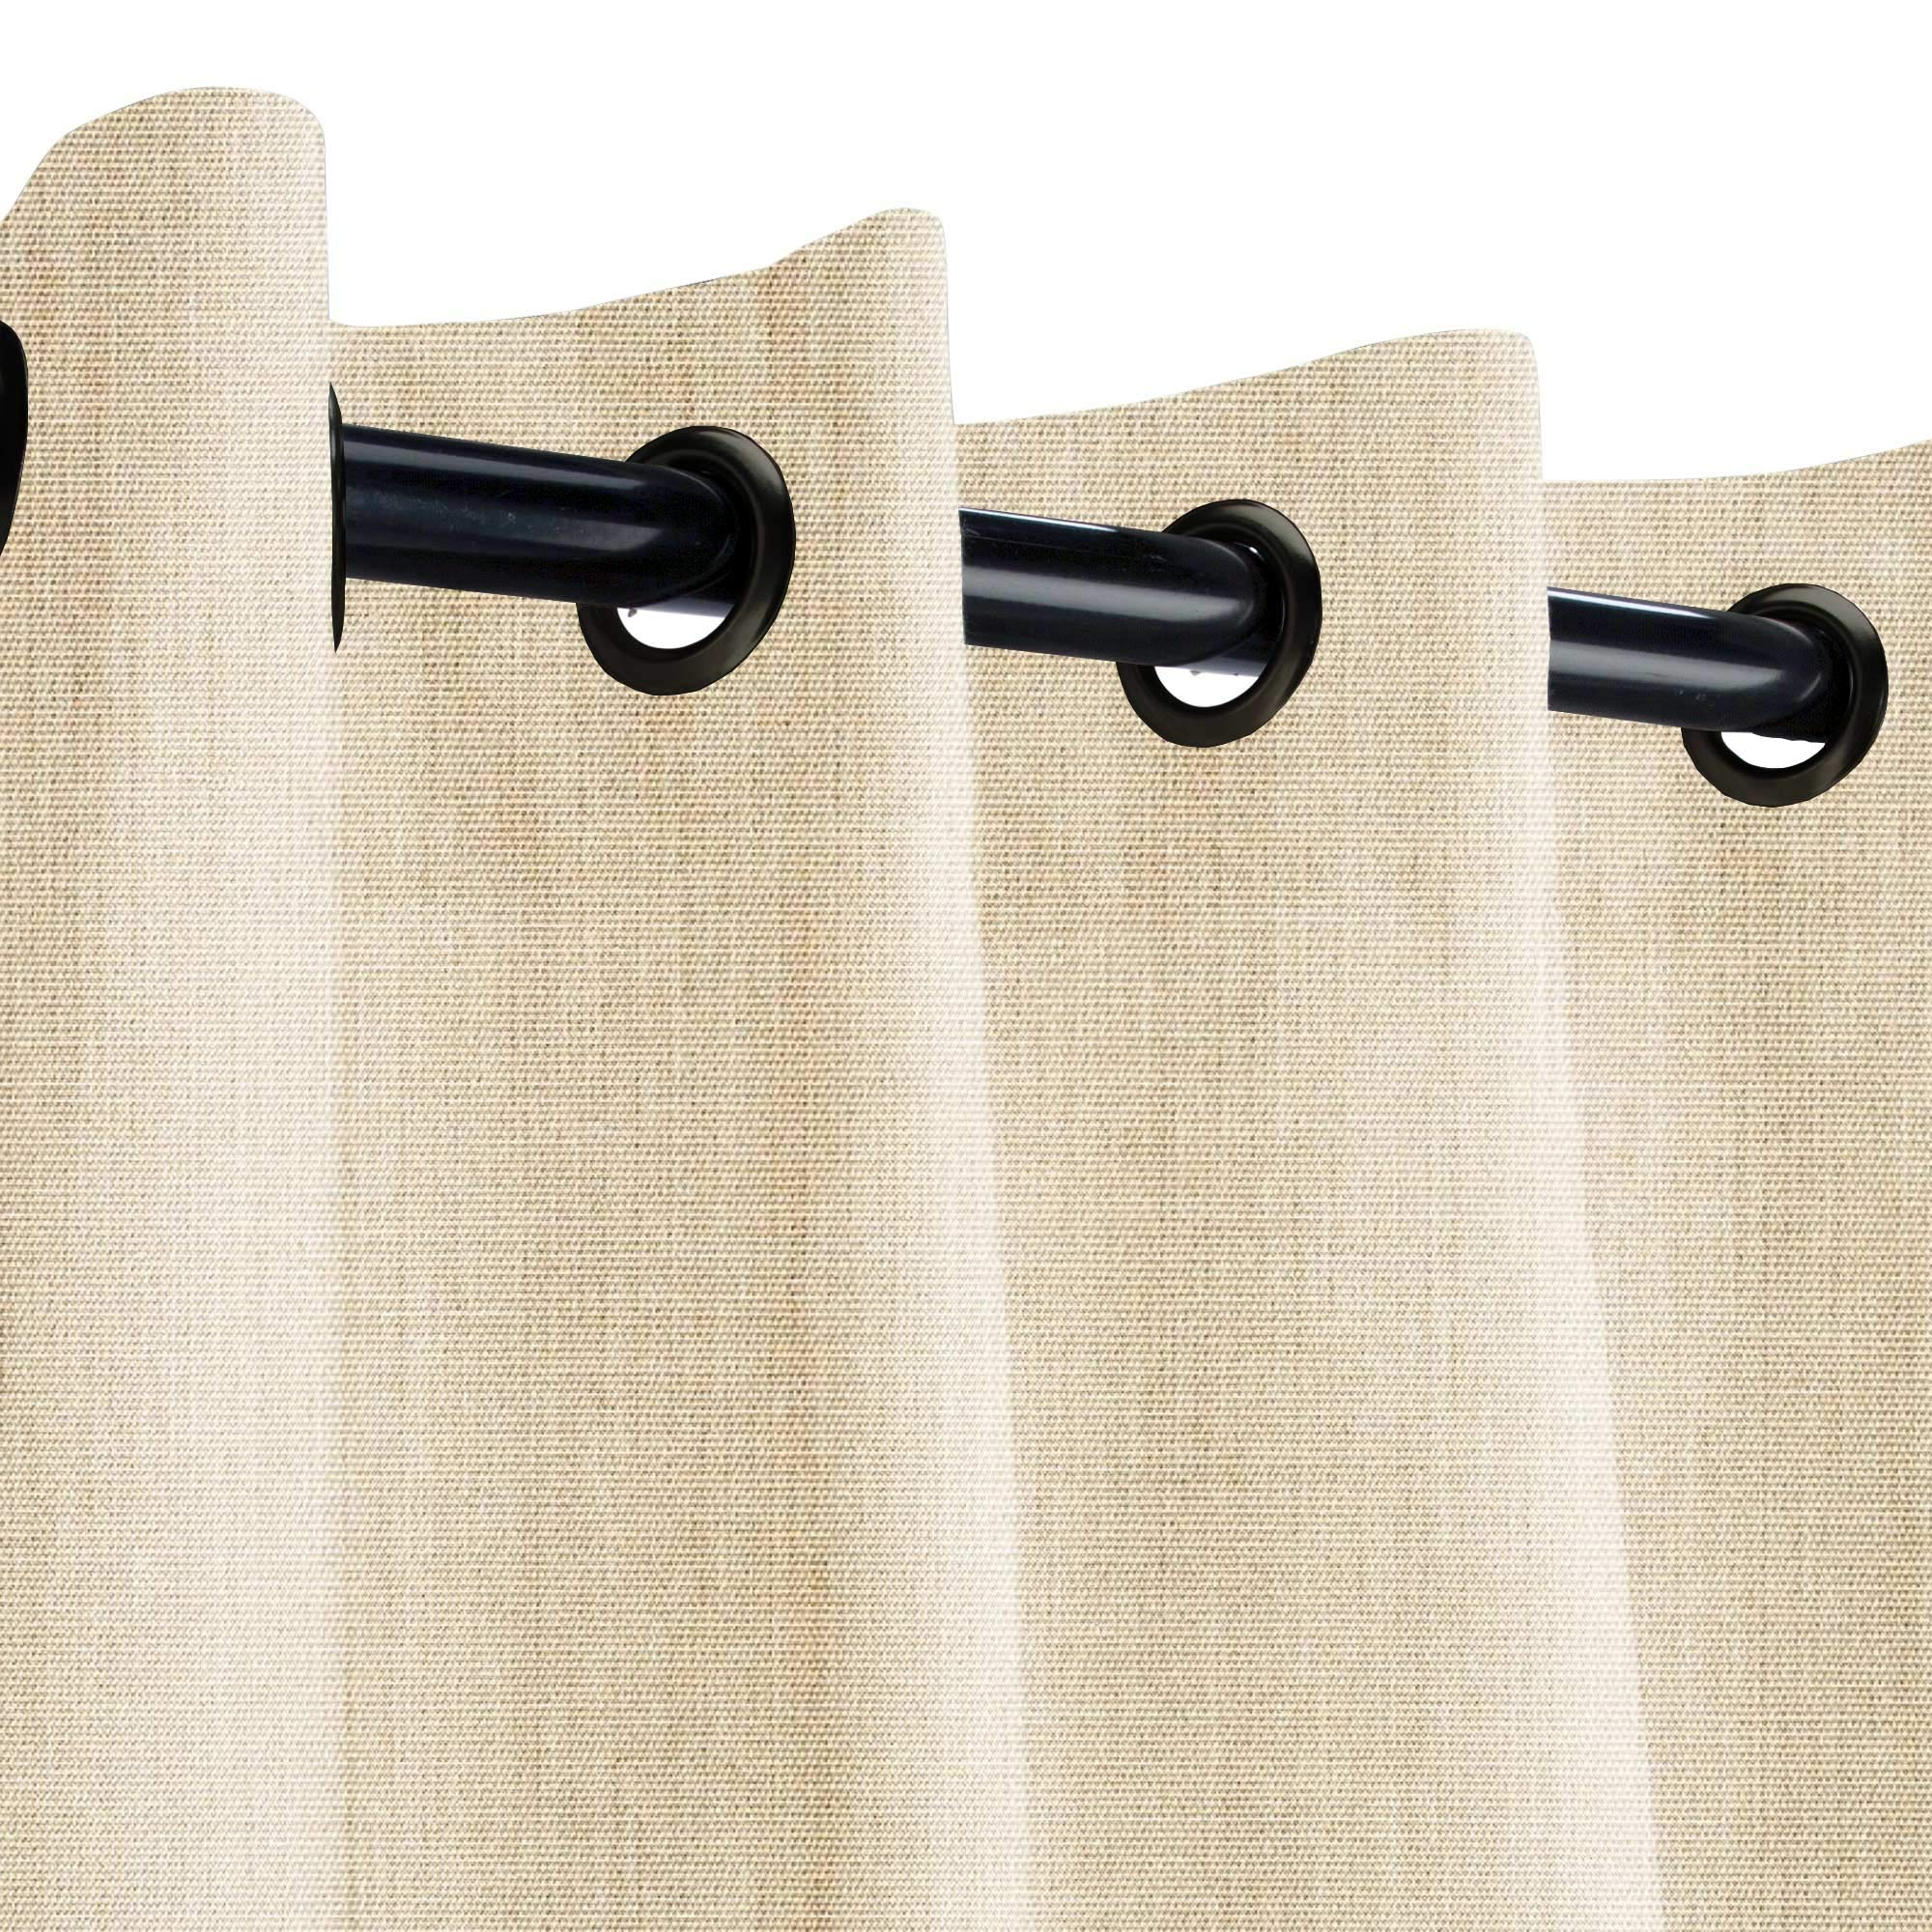 Sunbrella Canvas Flax Outdoor Curtain with Dark Gunmetal Grommets 50 in. Wide x 120 in. Long